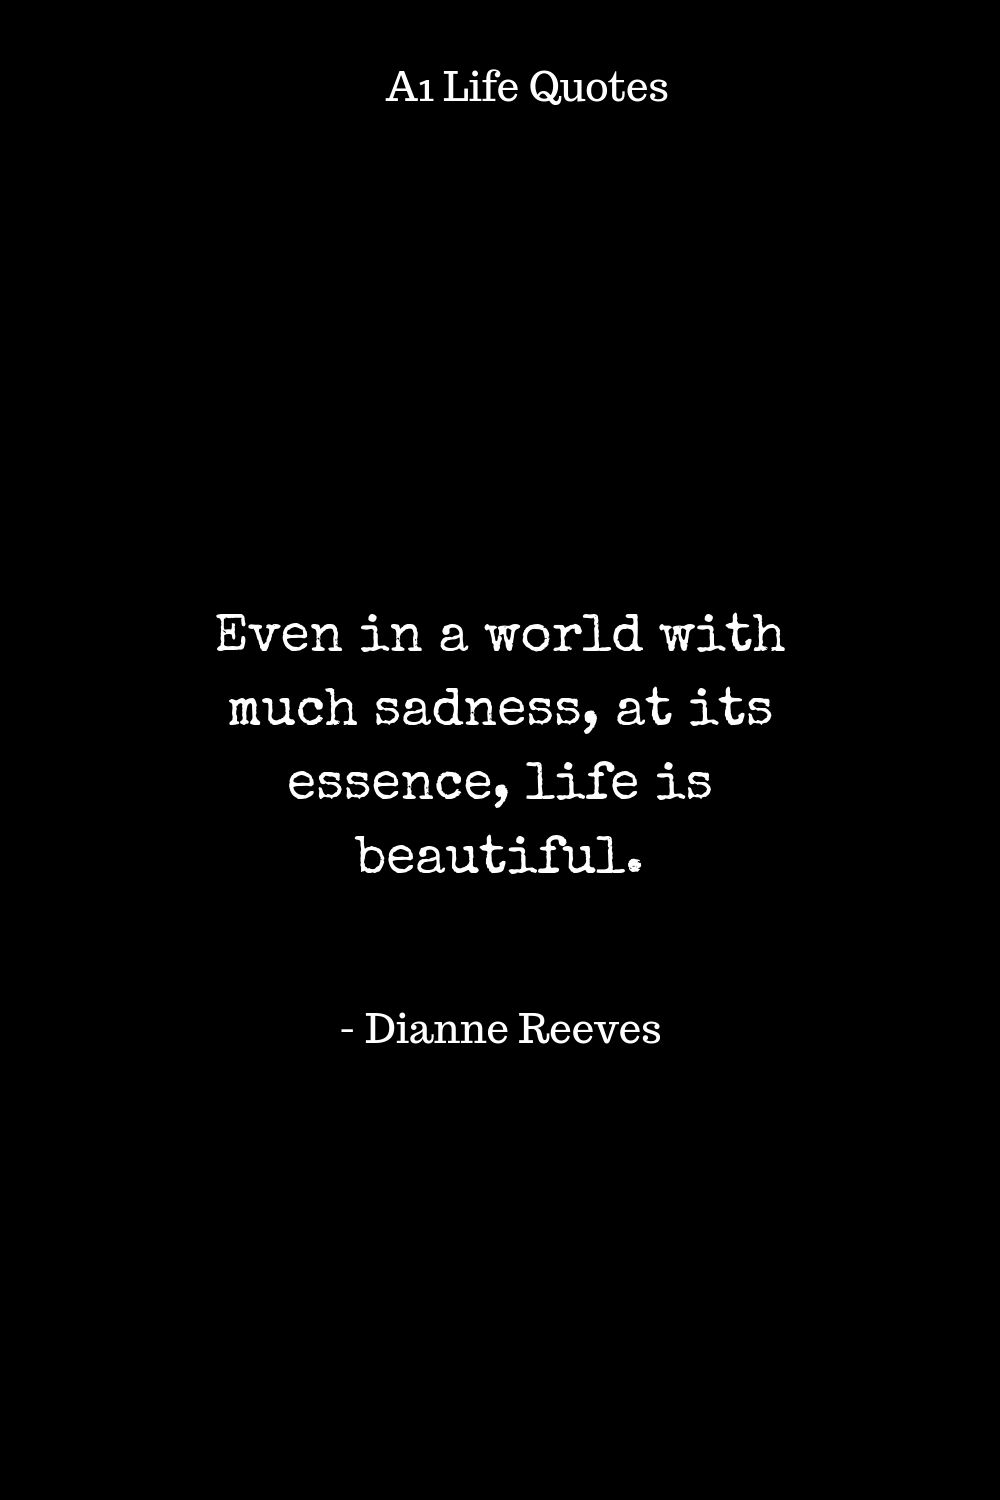 life is beautiful quotes and images